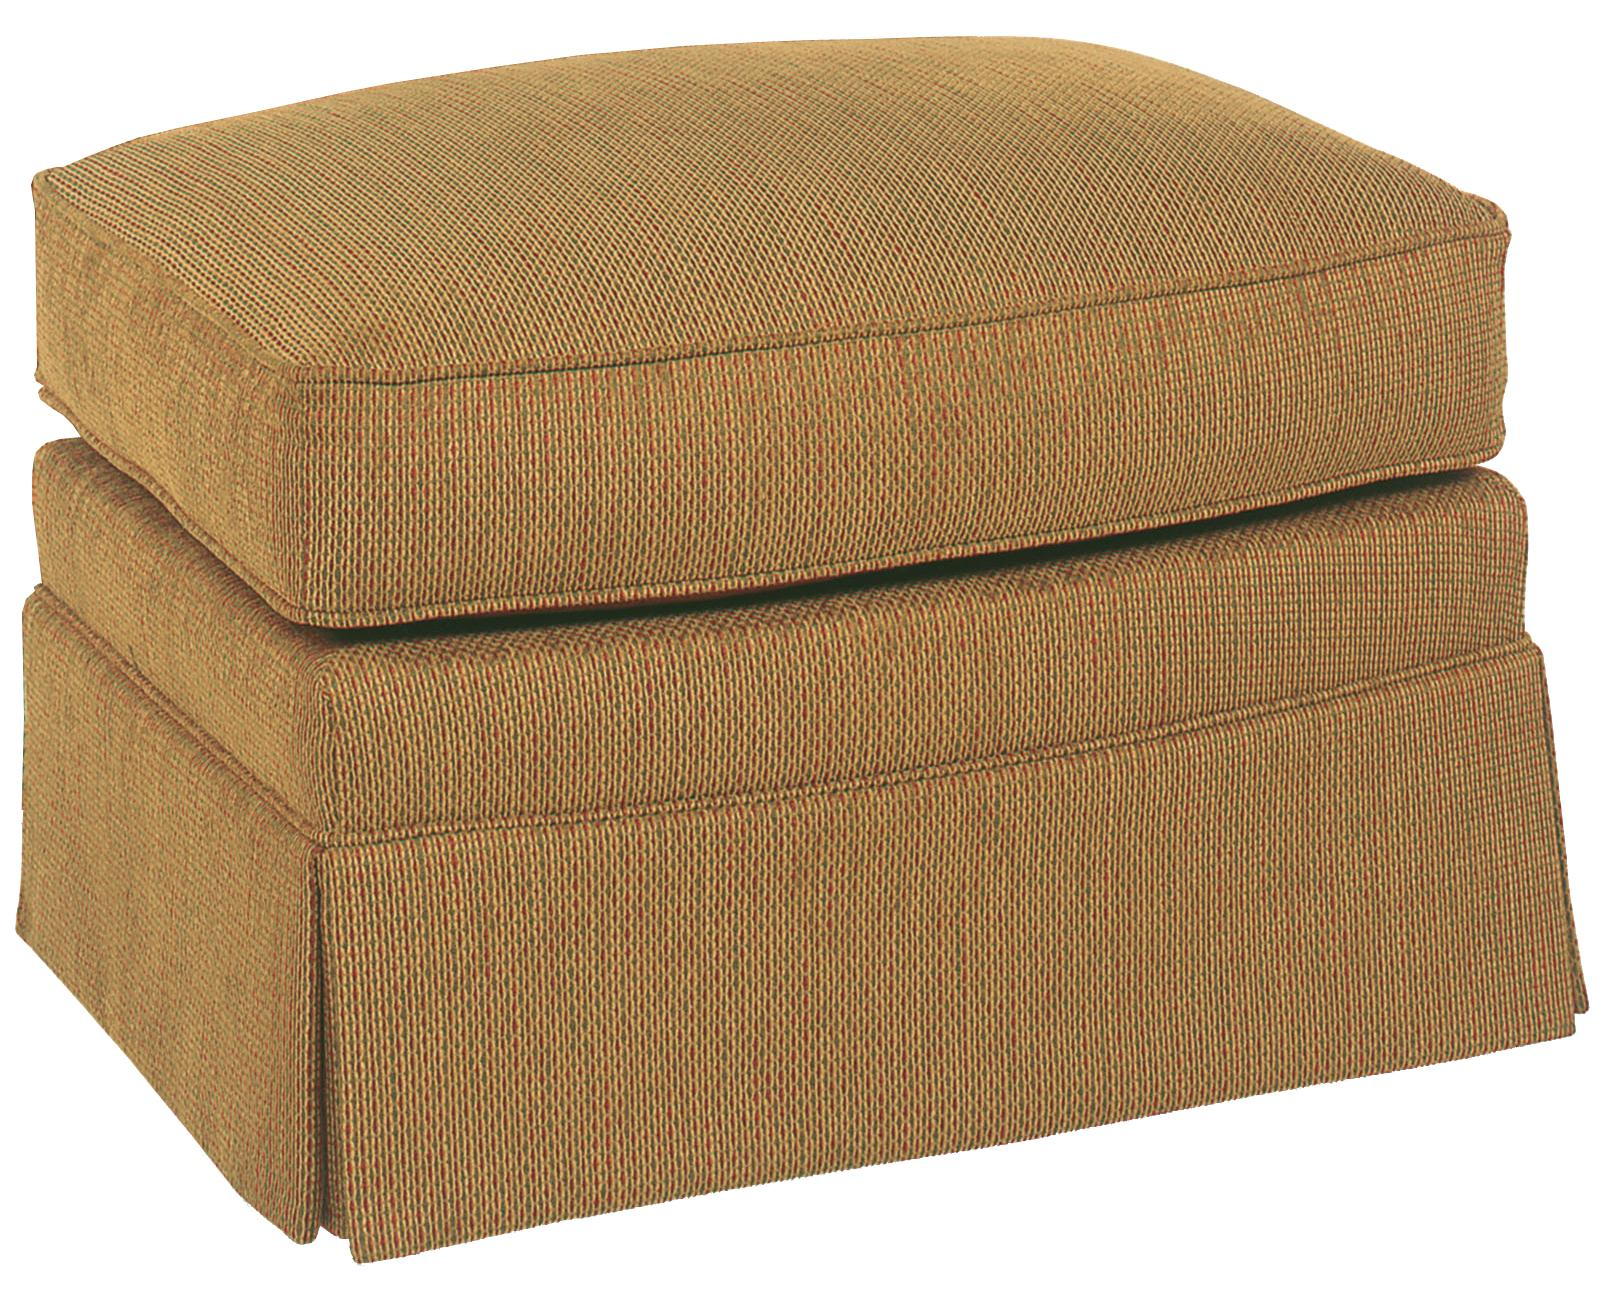 Fairfield Chairs Ottoman - Item Number: 1454-20